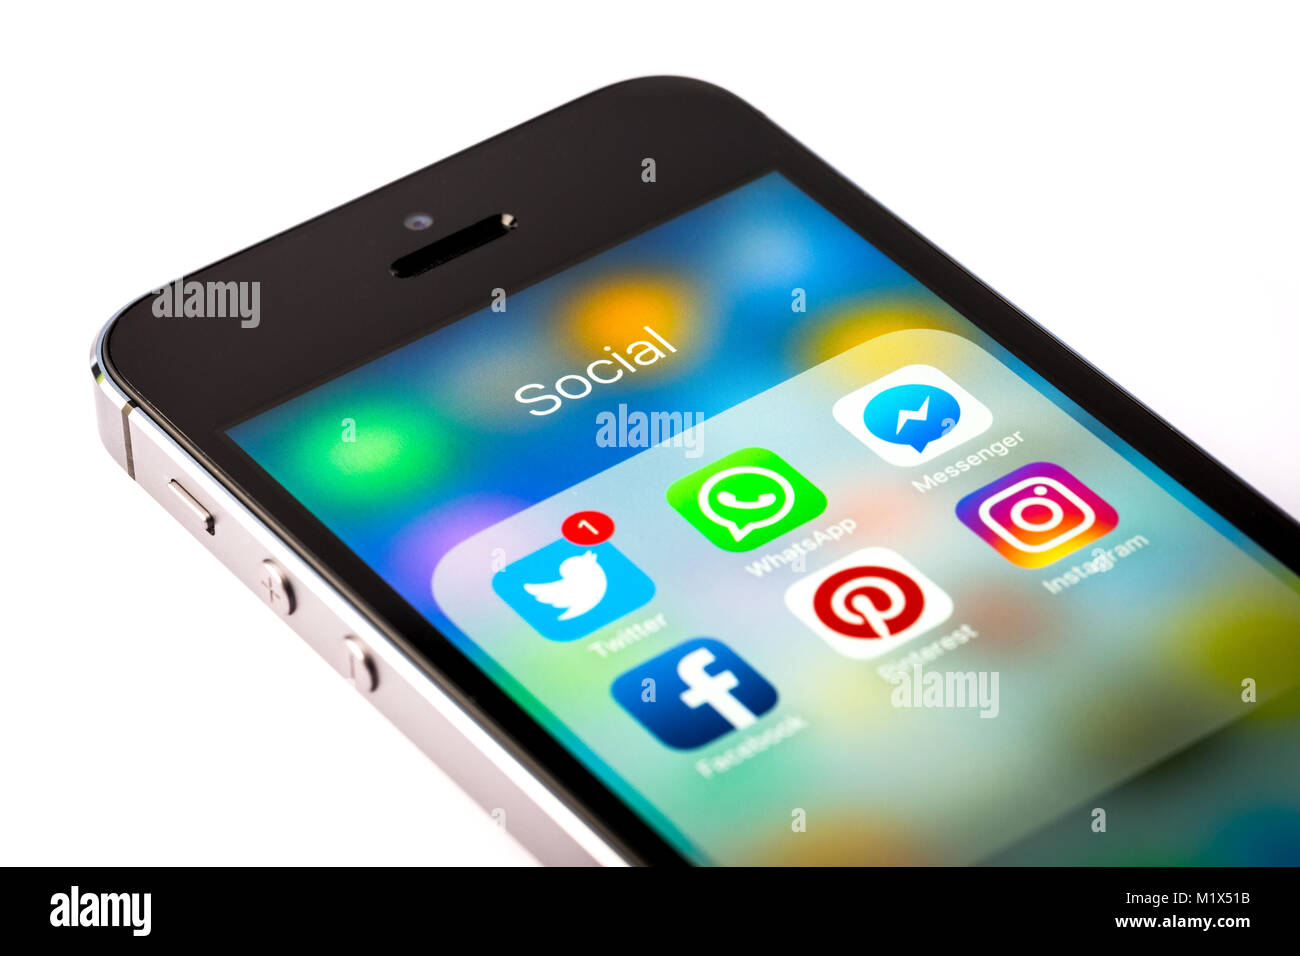 selection of social media apps on an iPhone mobile phone - Stock Image